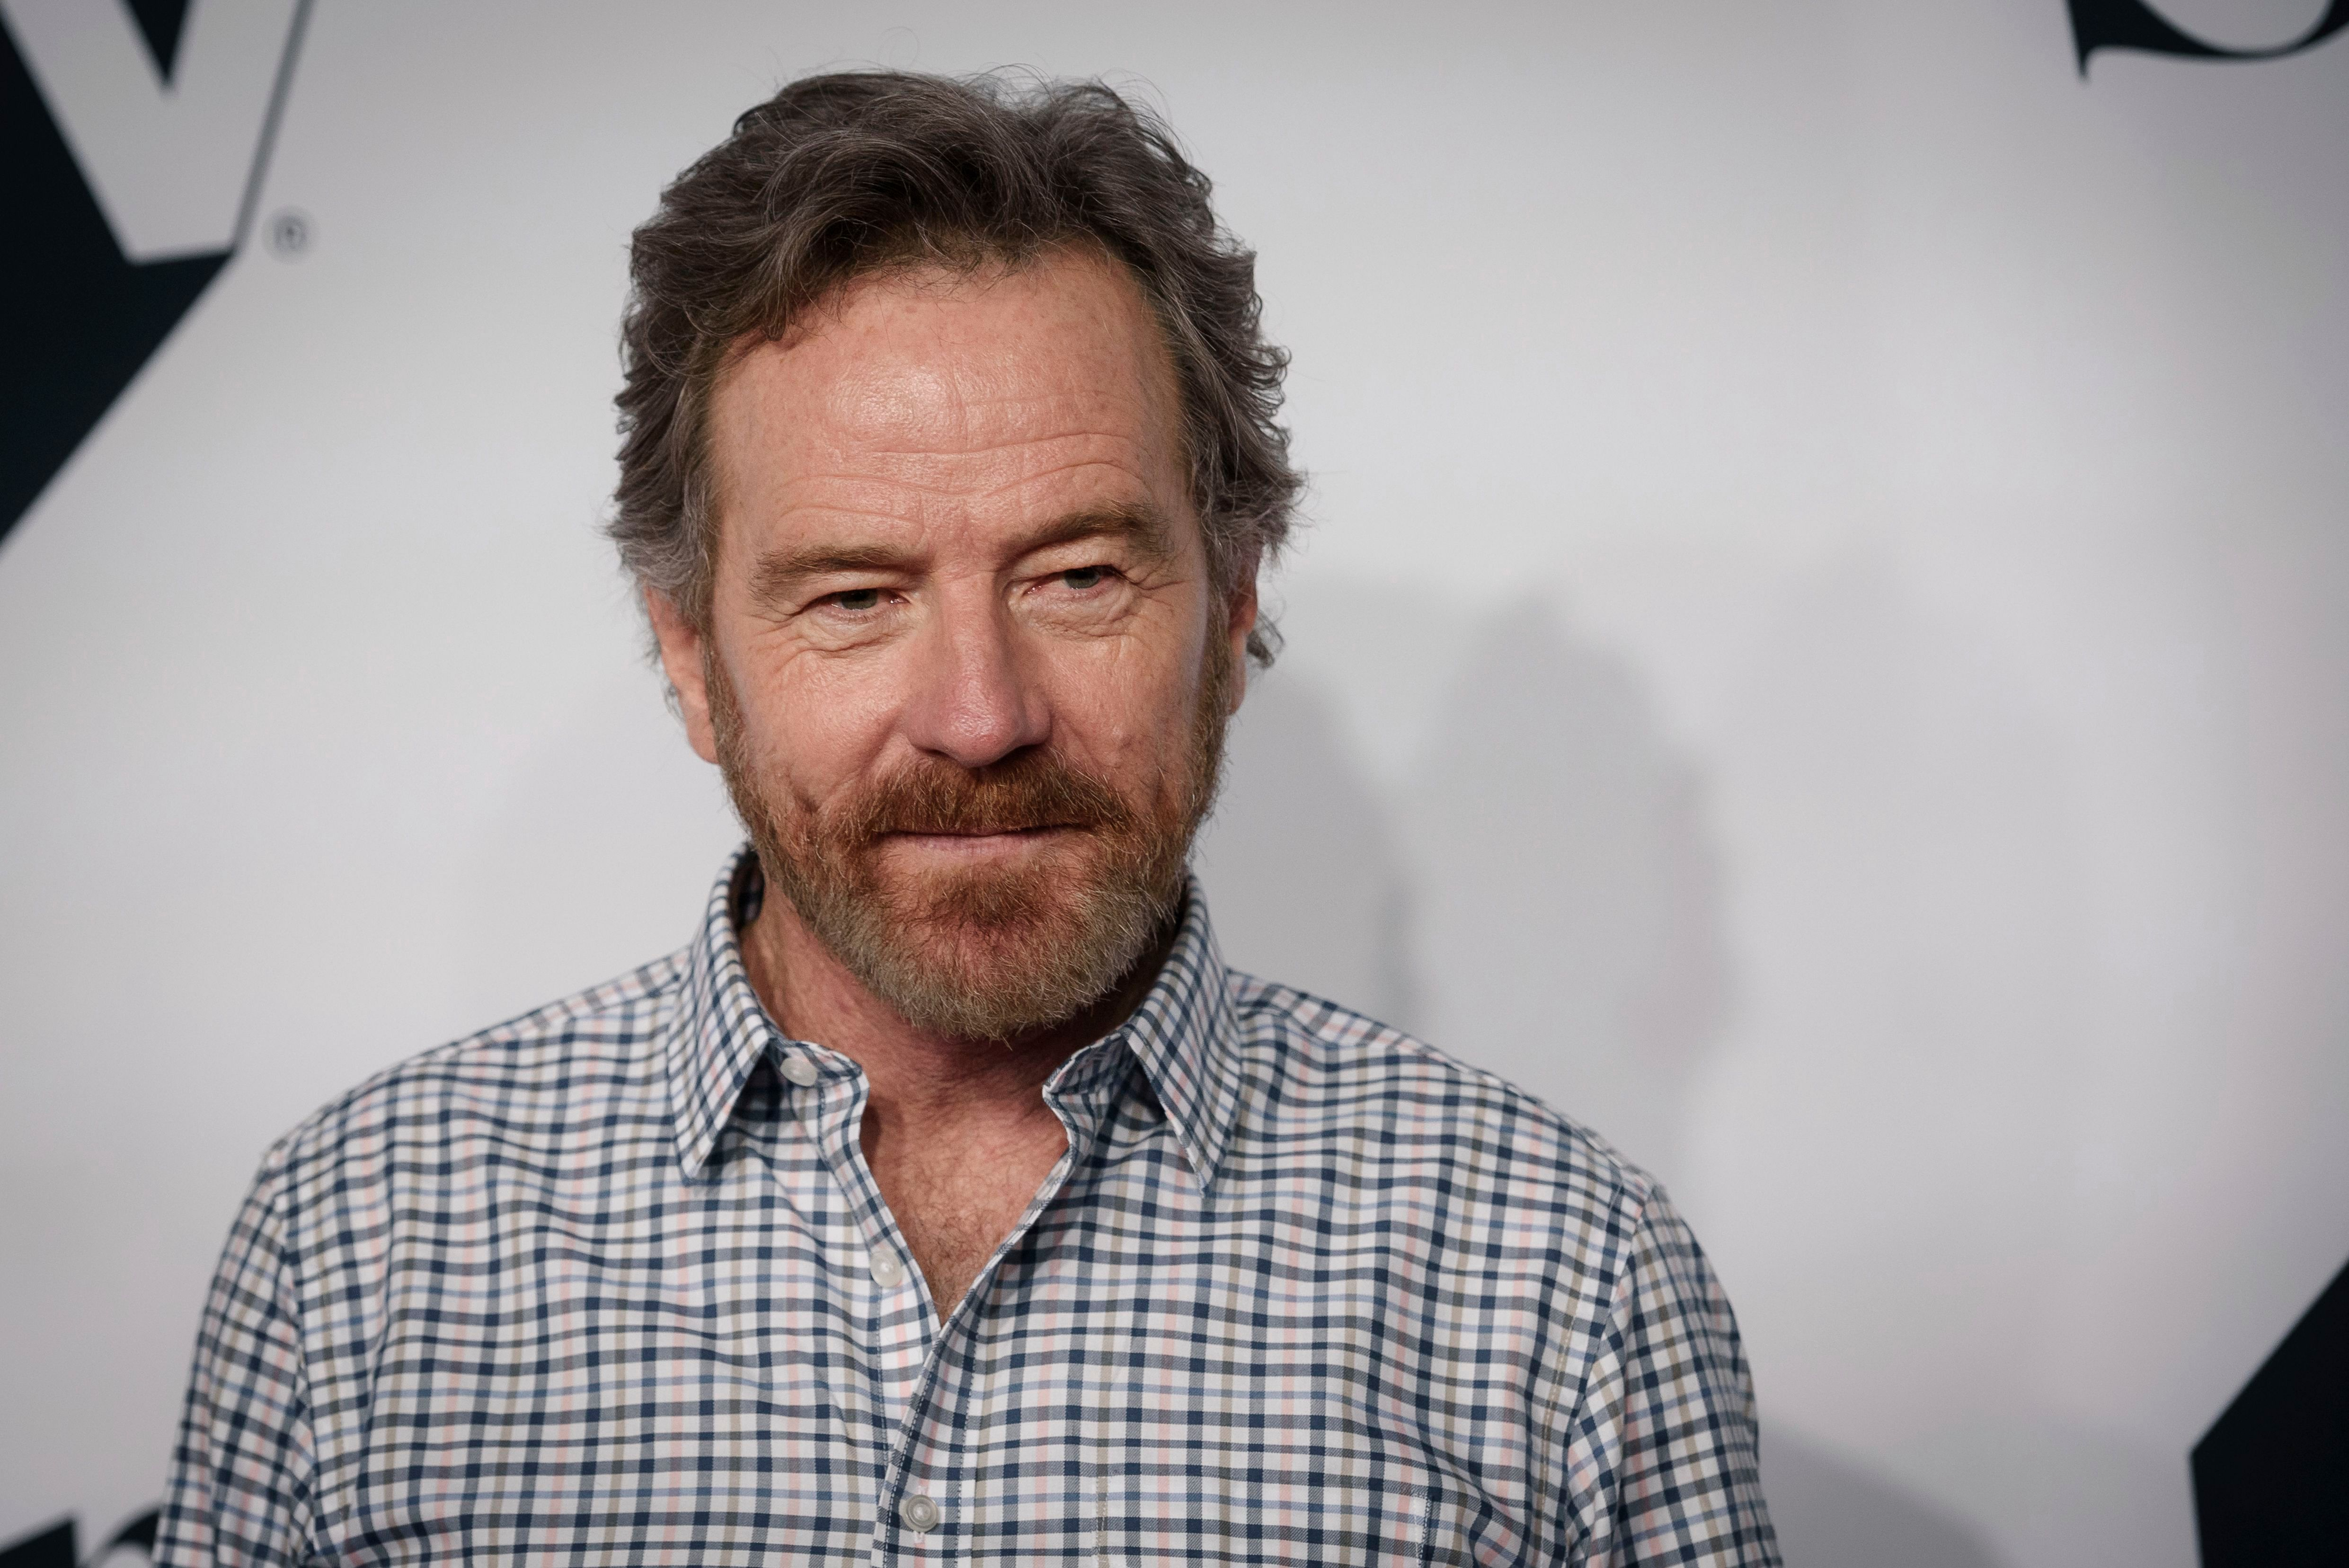 Bryan Cranston Shares His Two Rules for Starring in a Superhero Blockbuster